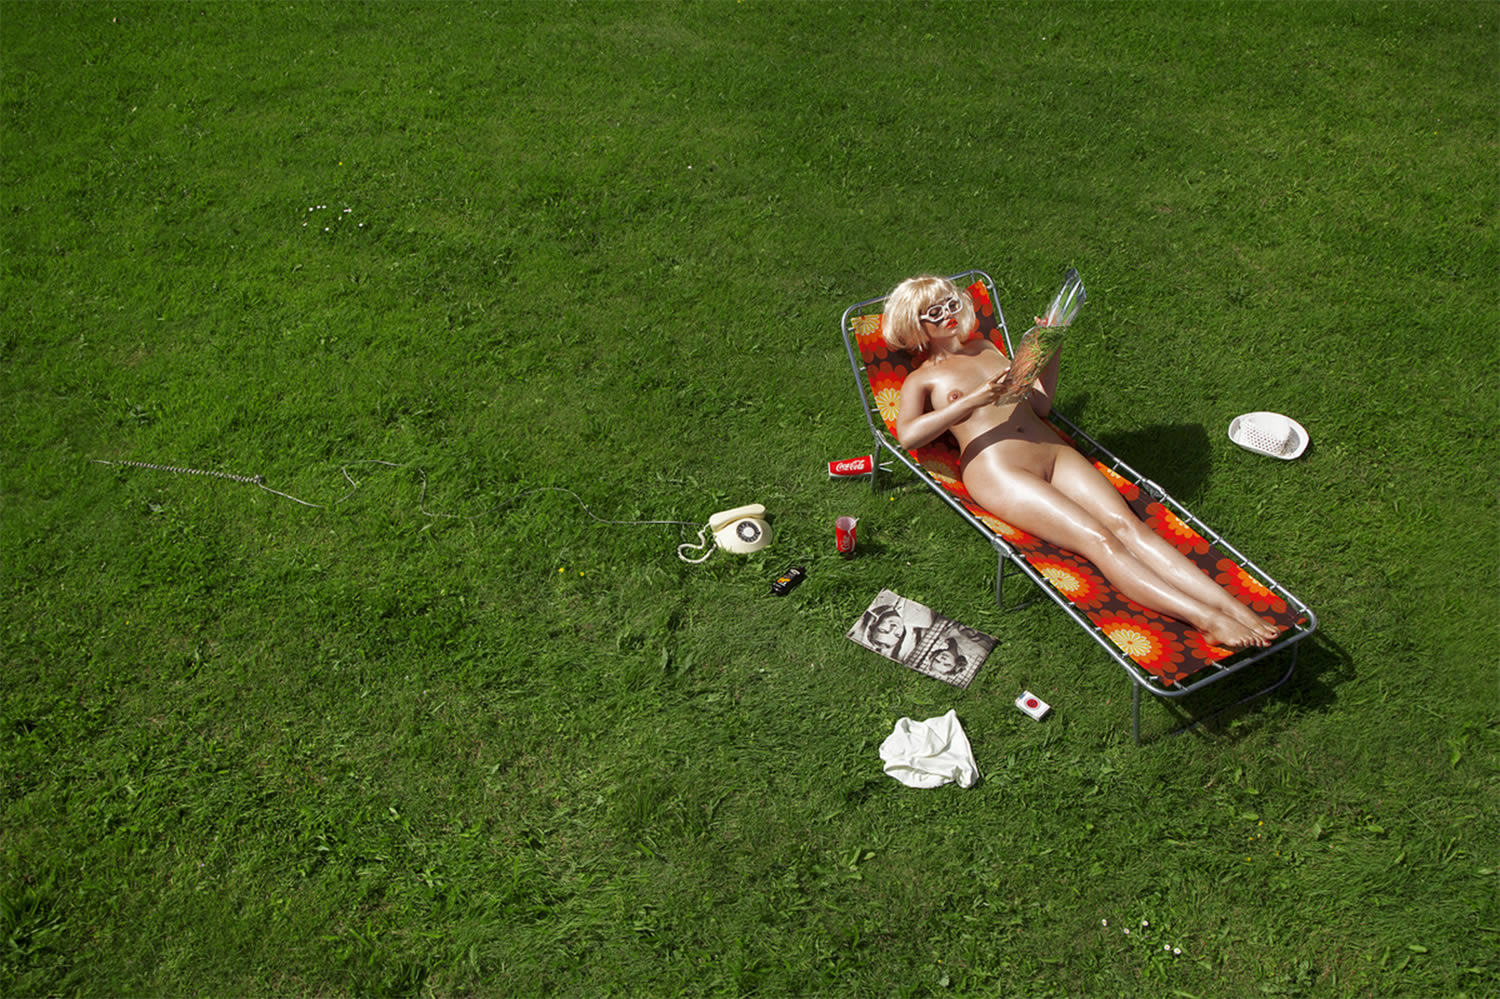 woman on sun bathing chair on grass lawn, by nadia lee cohen